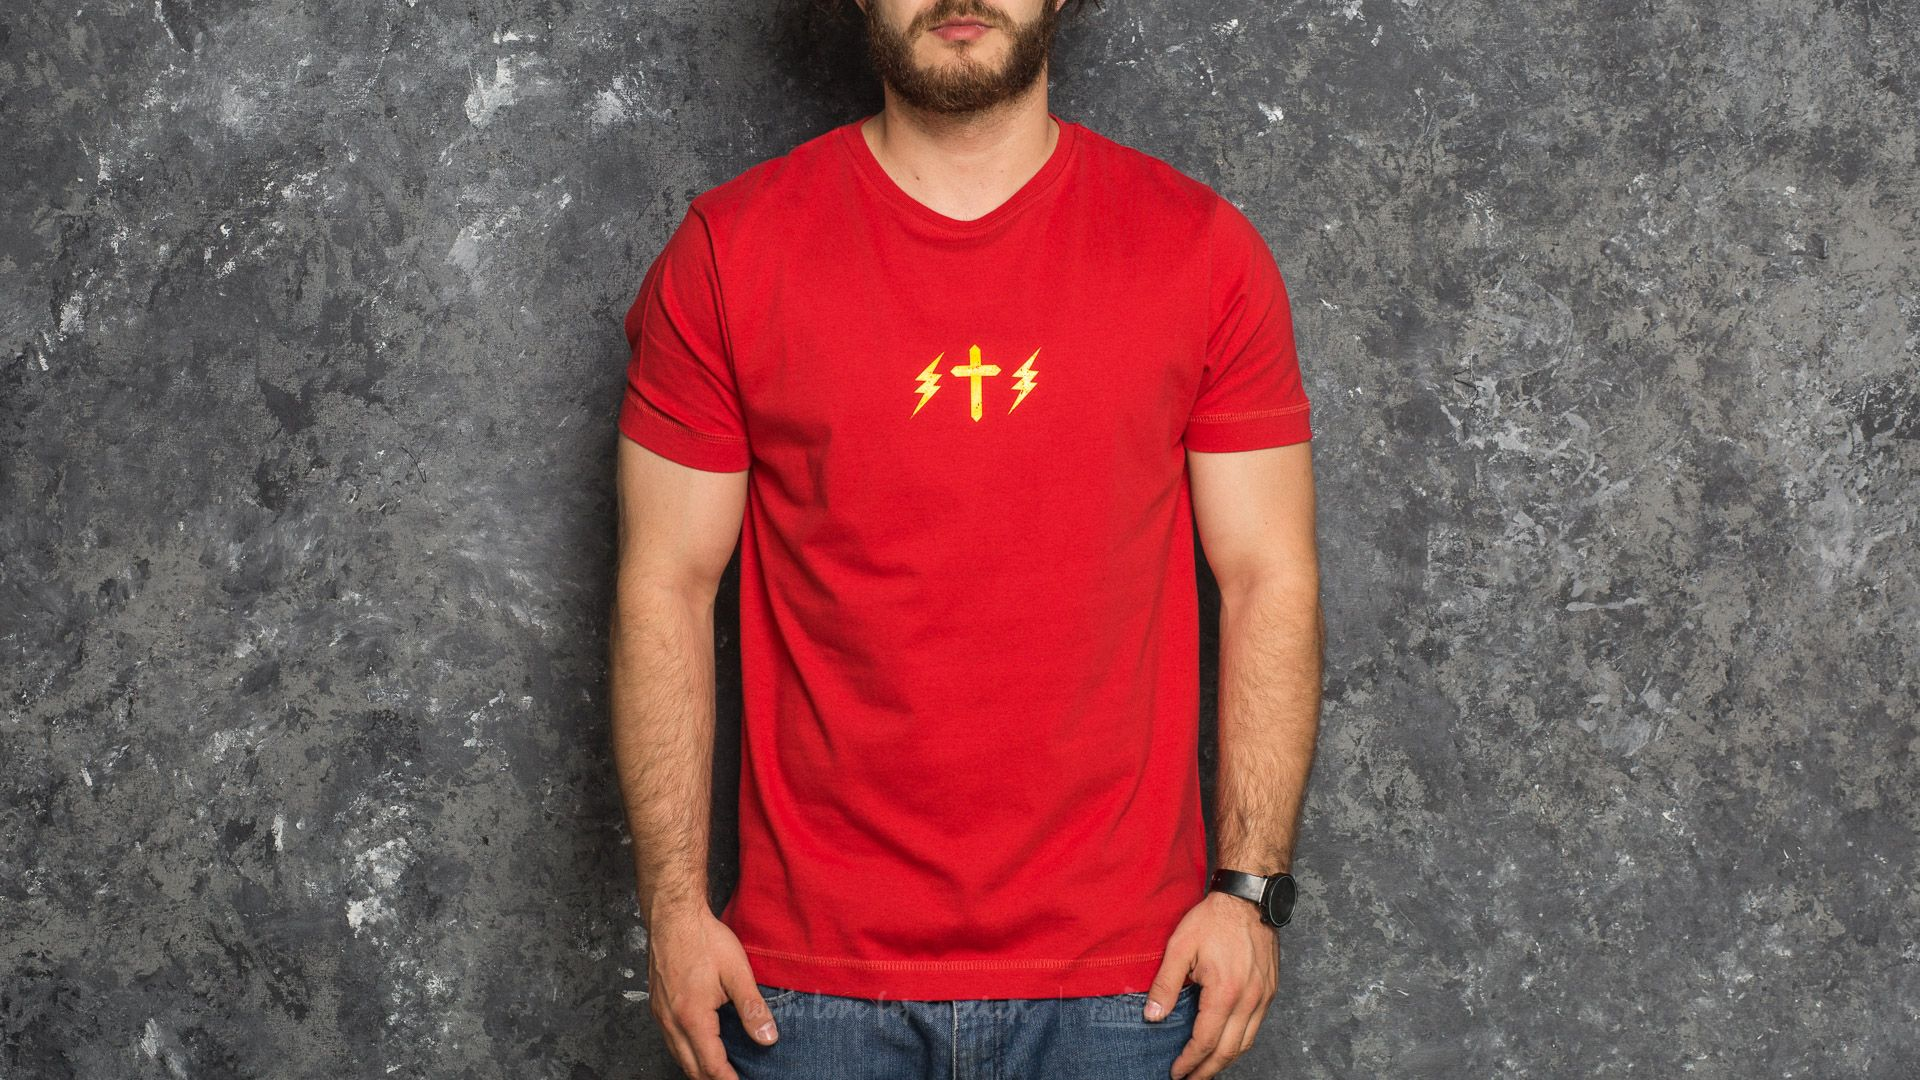 The Weeknd Symbols Shortsleeve Tee Red - 17530